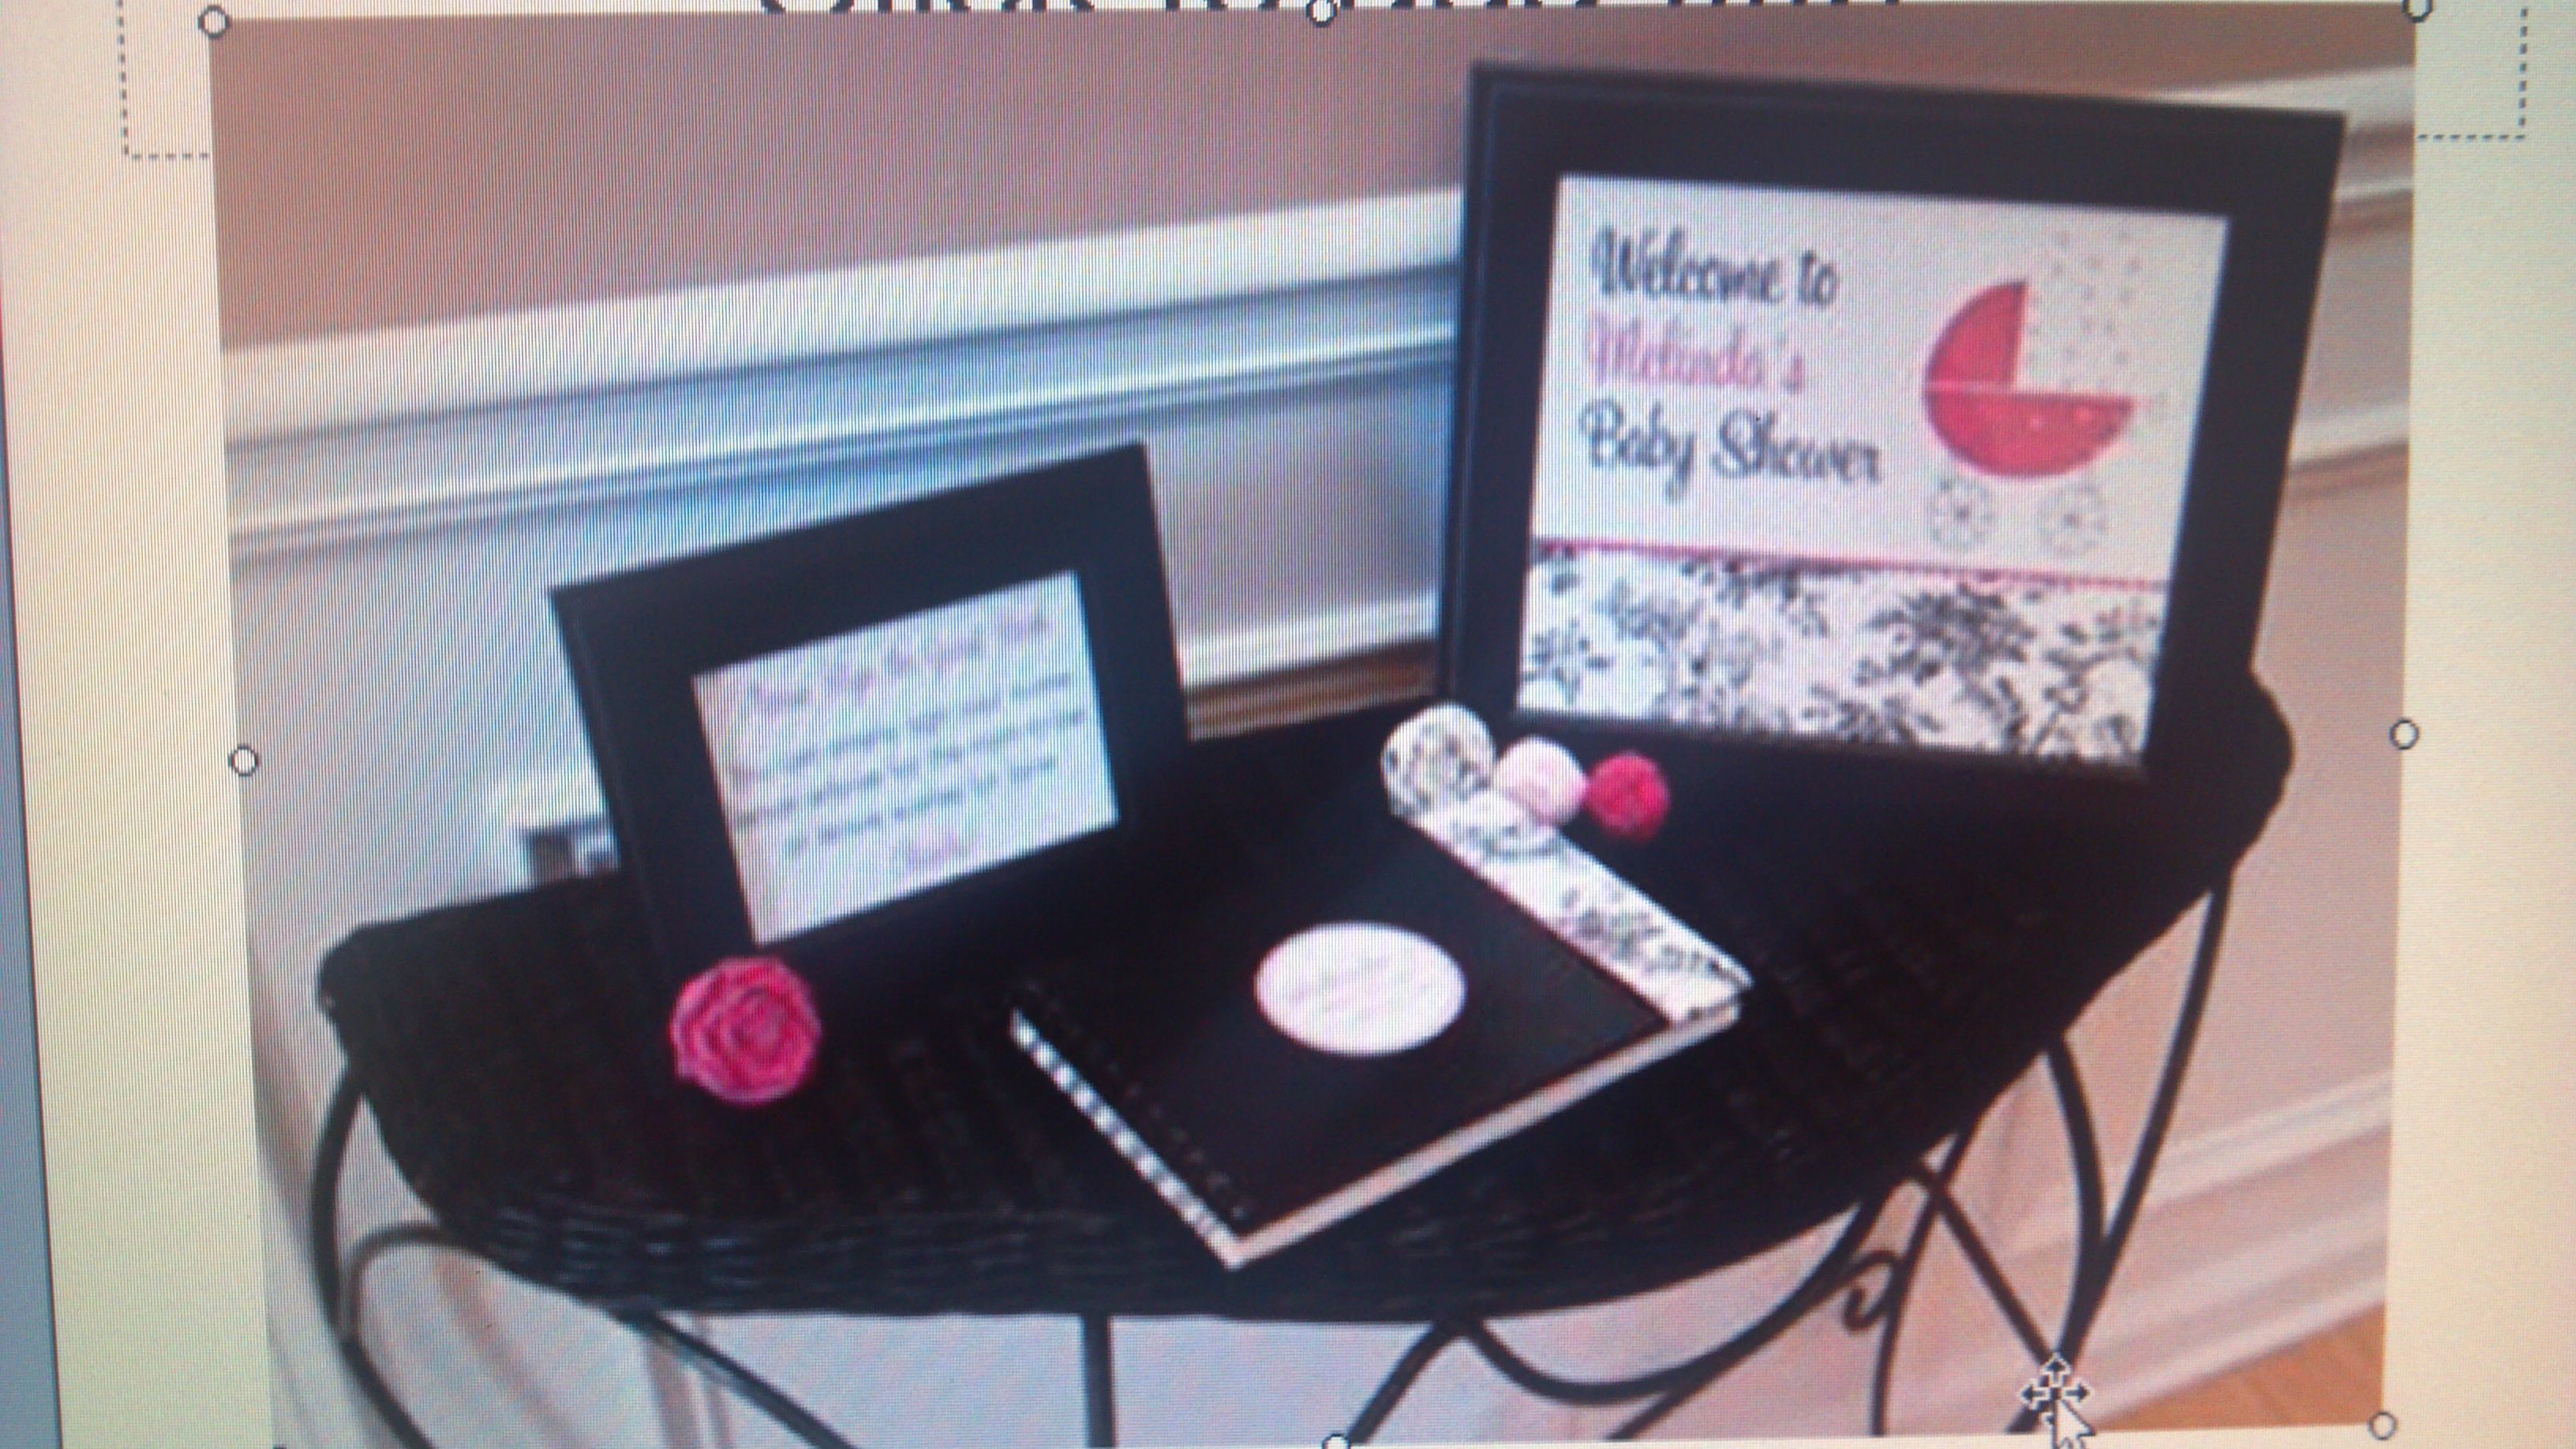 Table guest book set up i have the welcome sign, and the guest book ready.